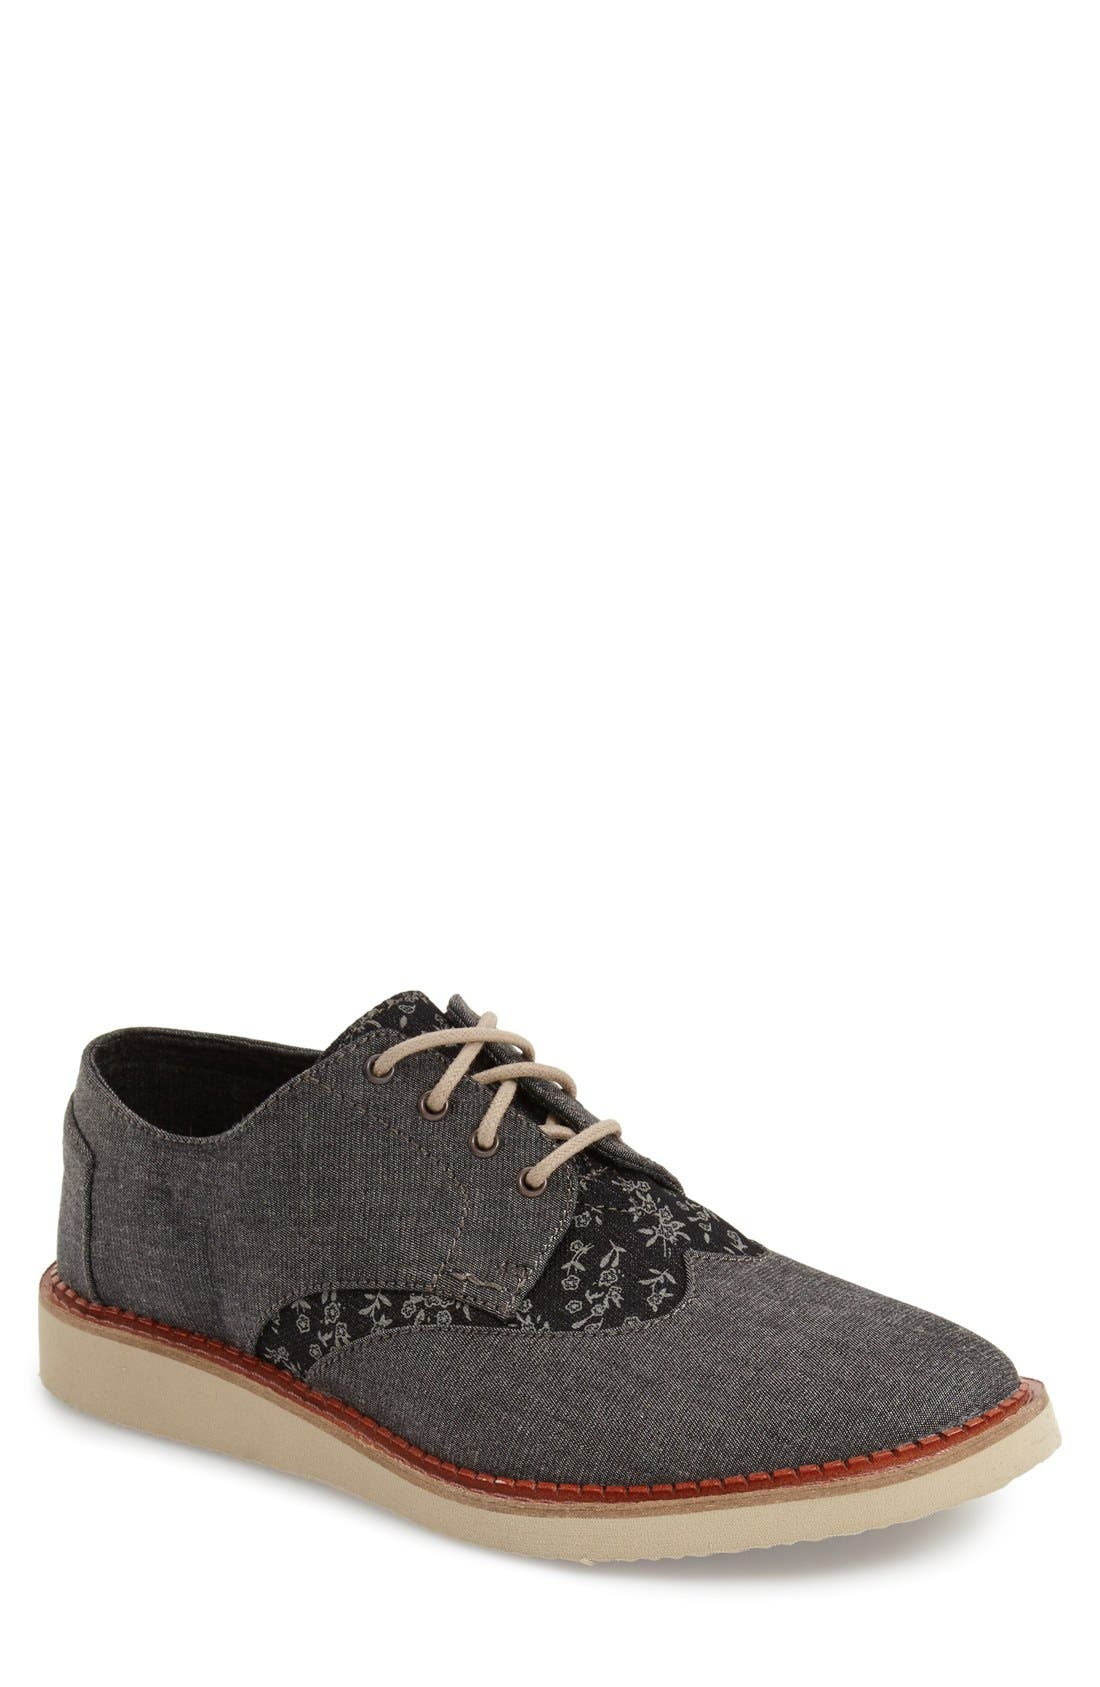 'Classic Brogue' Cotton Twill Derby,                             Main thumbnail 4, color,